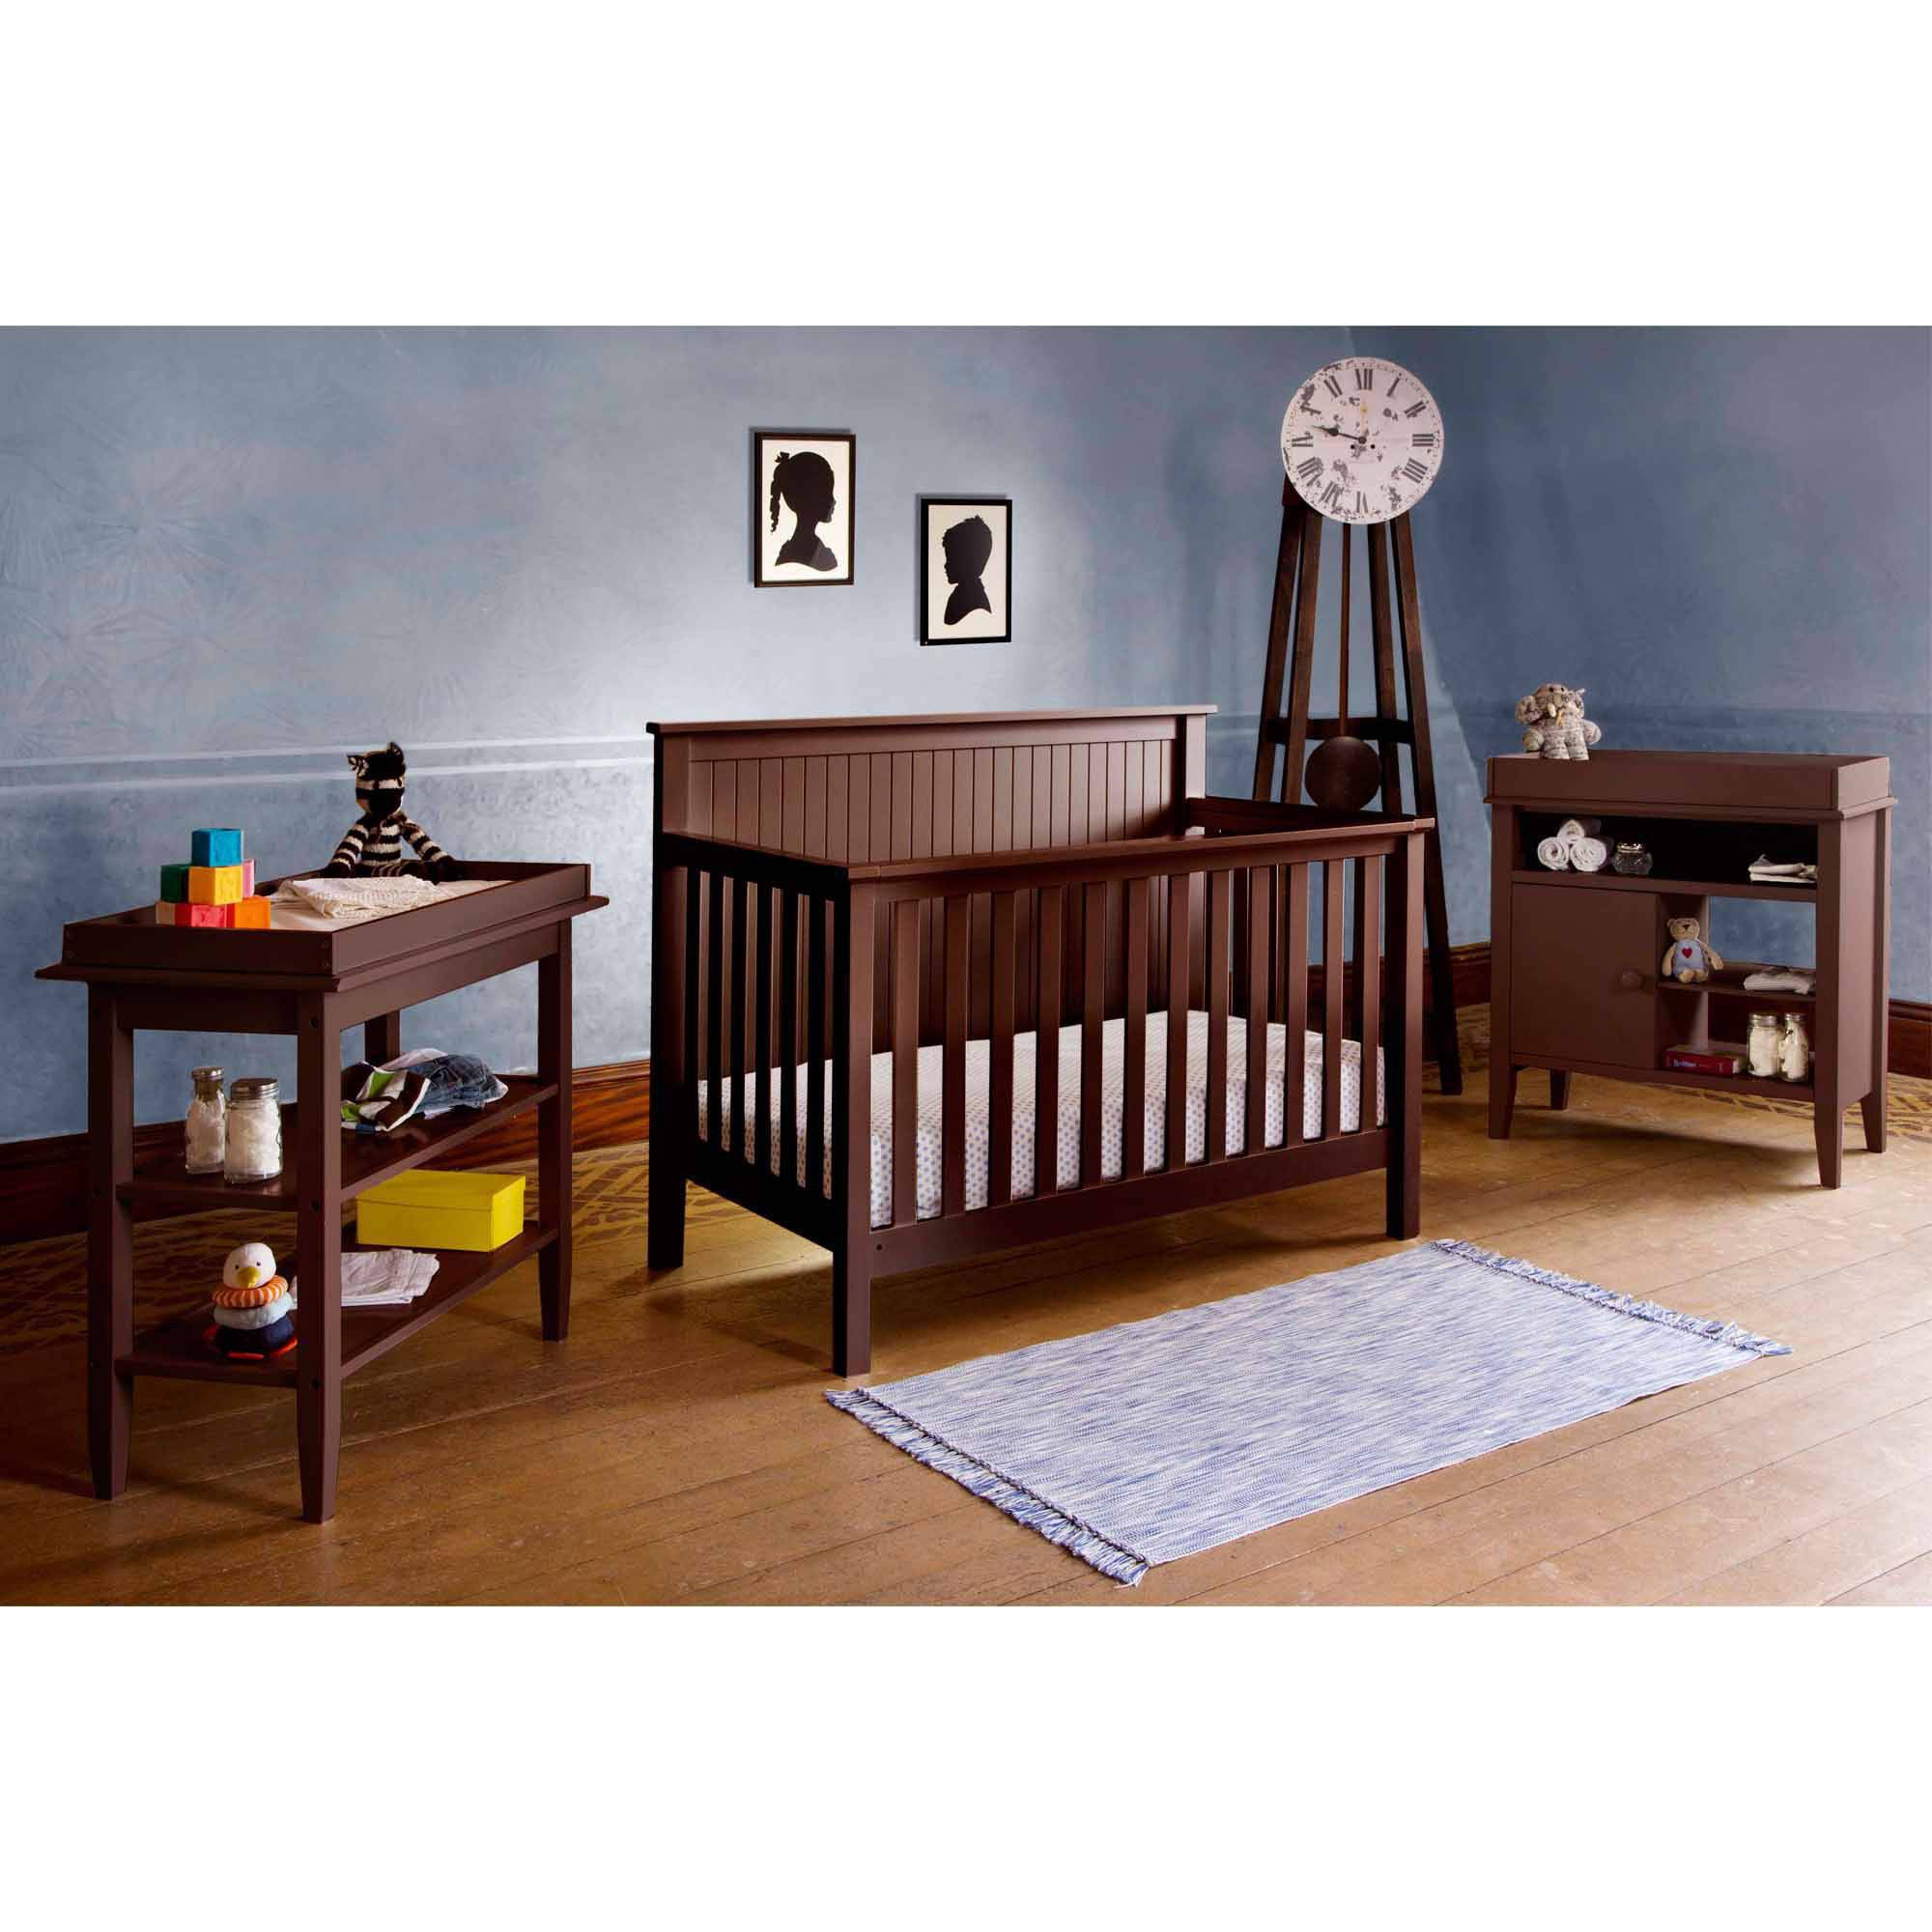 Lolly & Me Americana 4-in-1 Convertible Crib Espresso